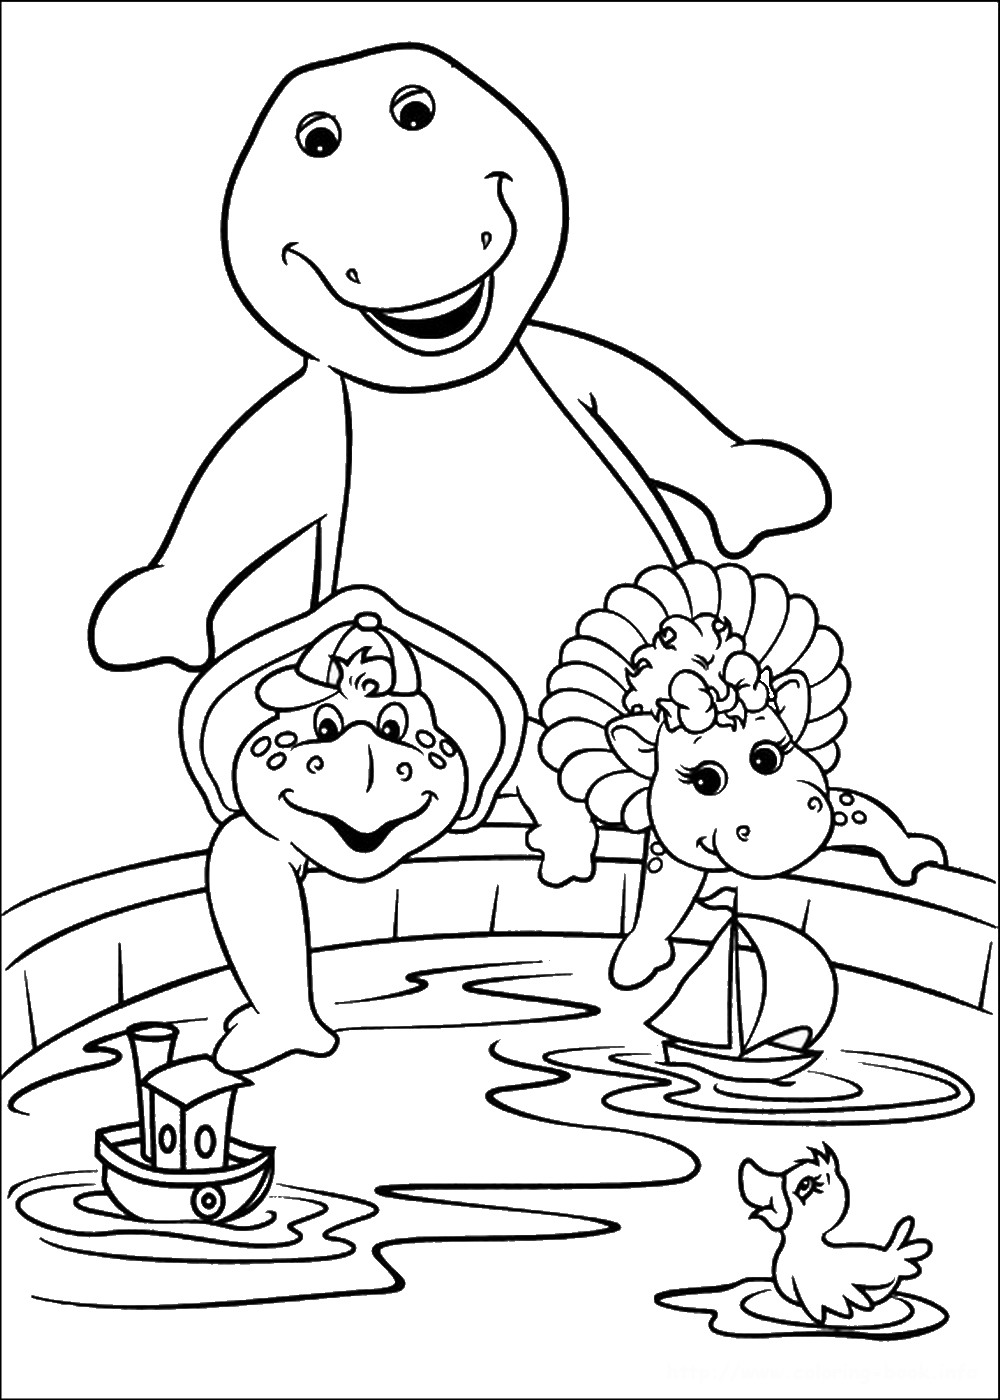 printable pages to color 40 top free coloring pages we need fun printable color pages to